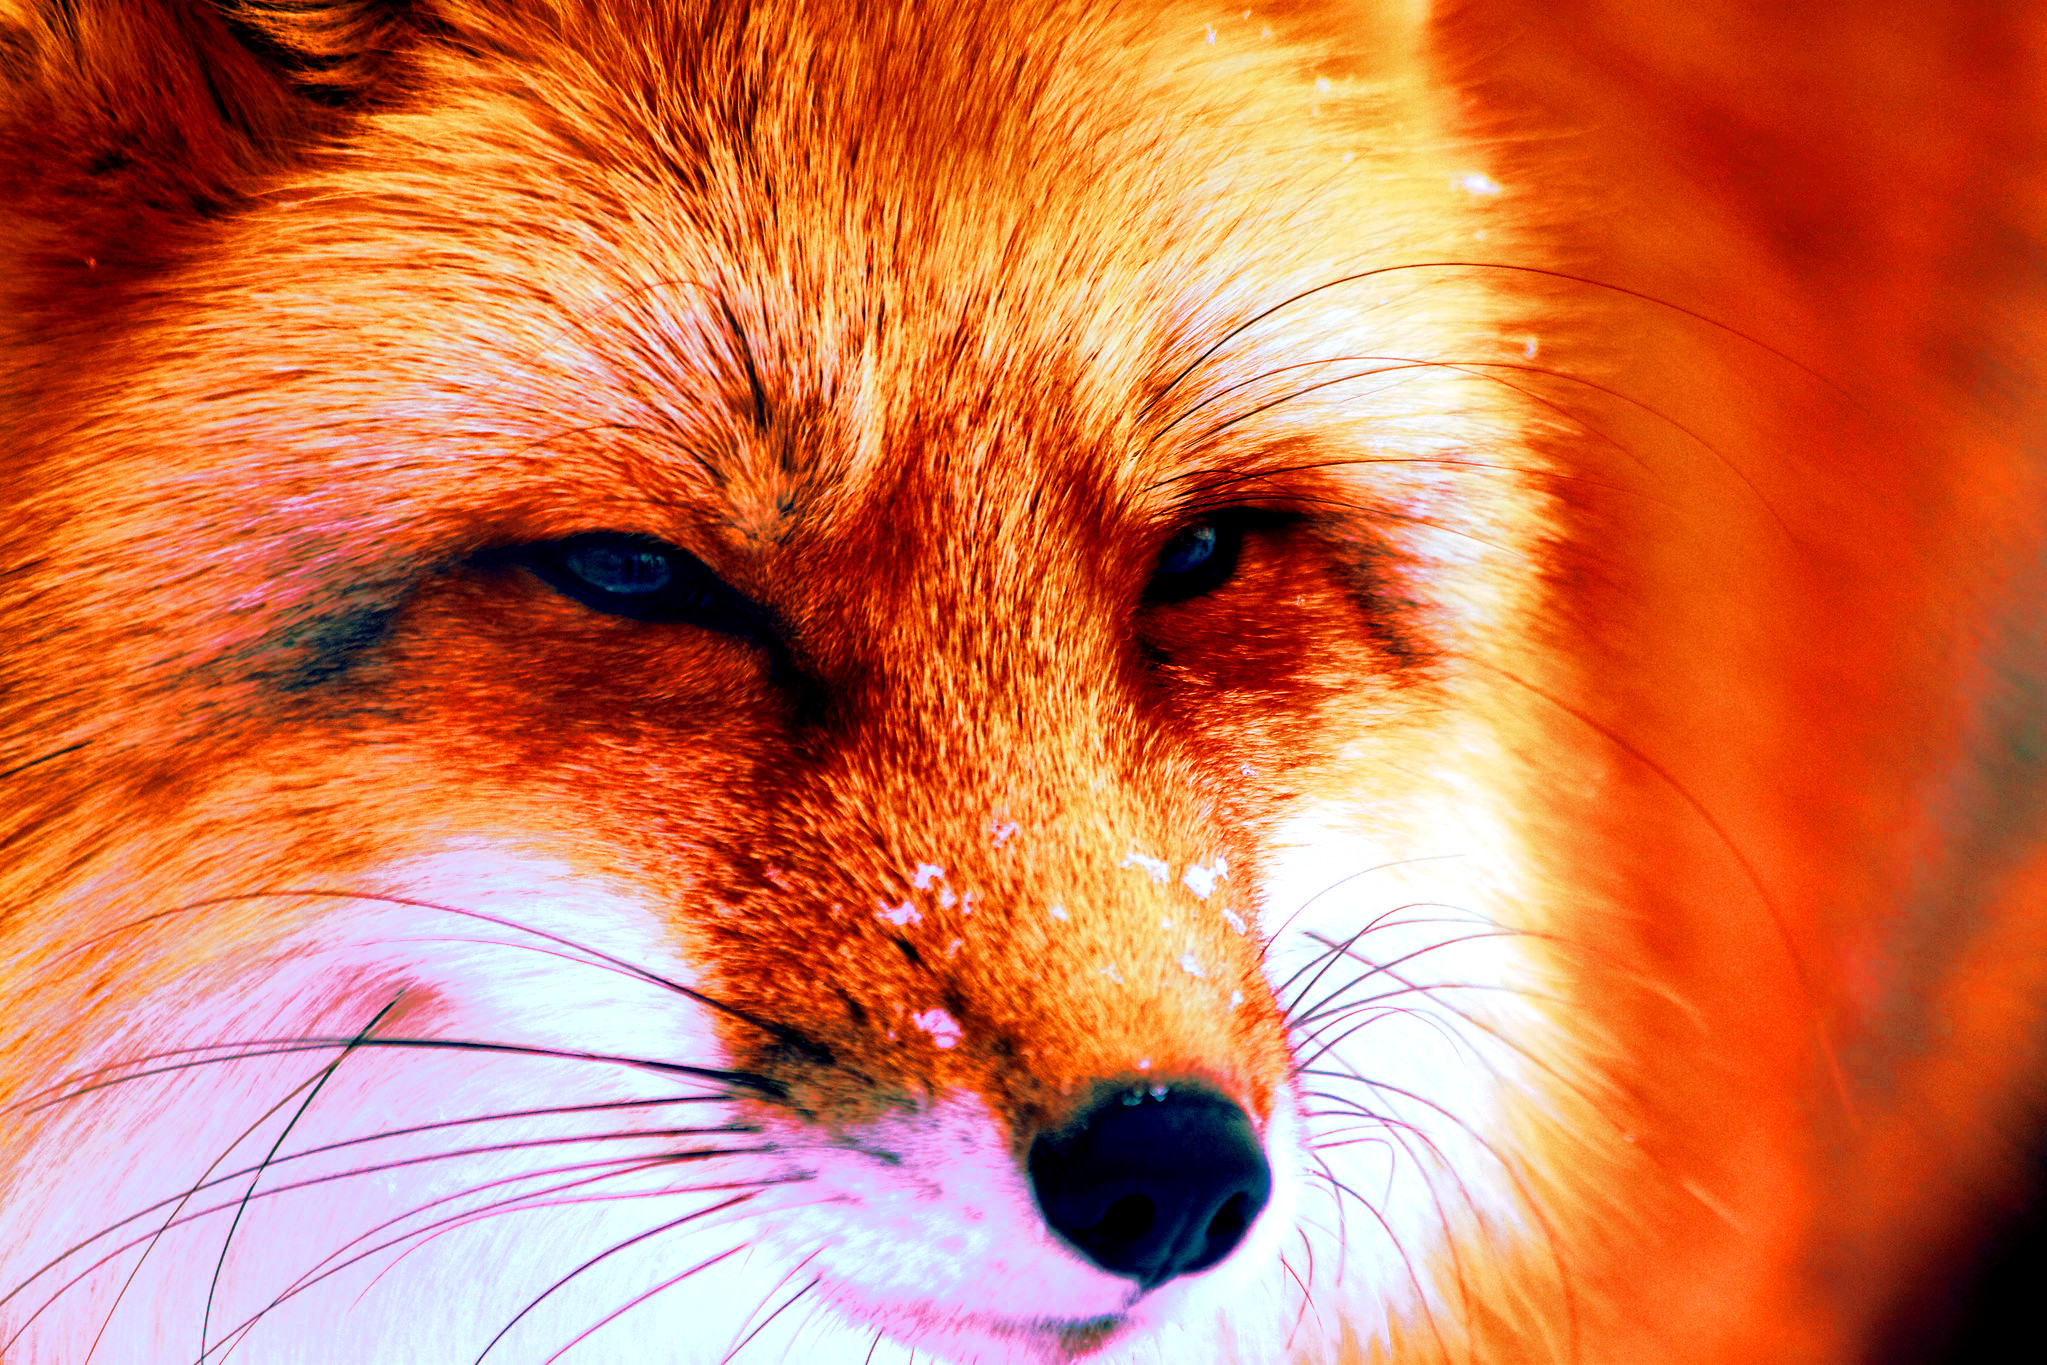 Fox original by Der Robert March 2013